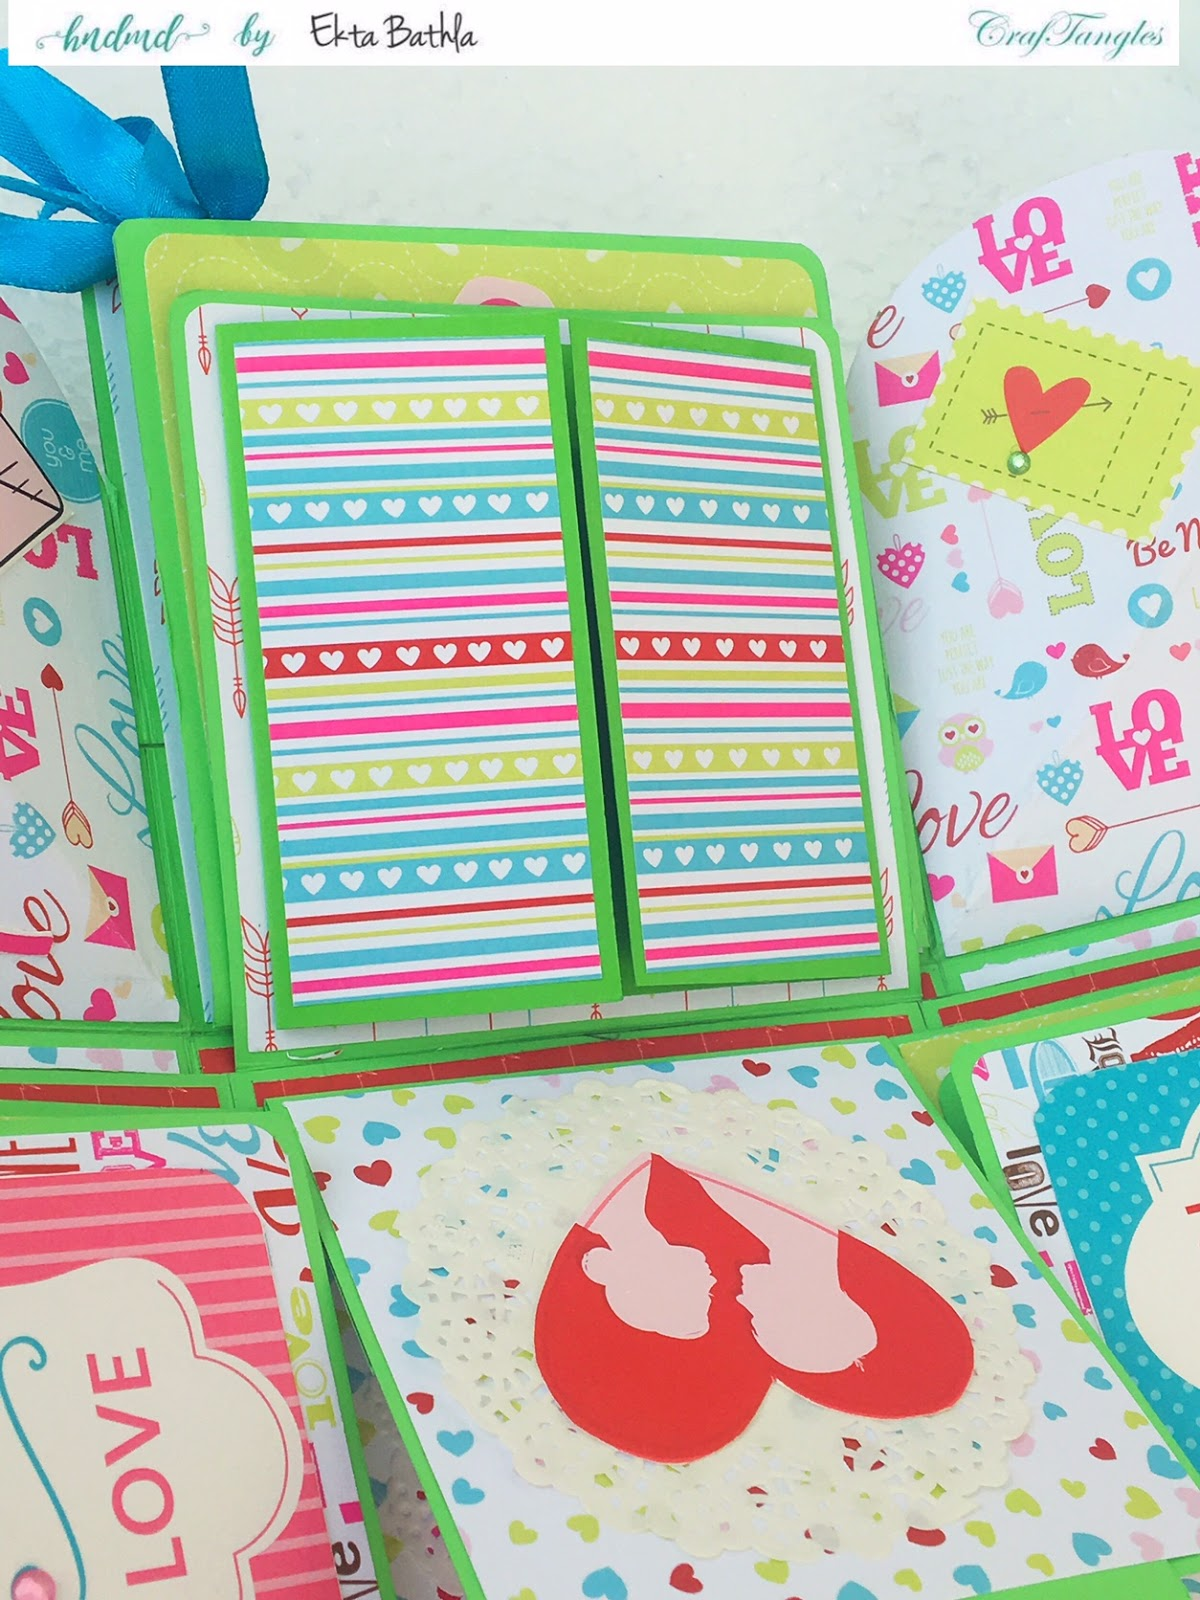 Love themed explosion box using CrafTangles Be My Valentine paper and element packs 8